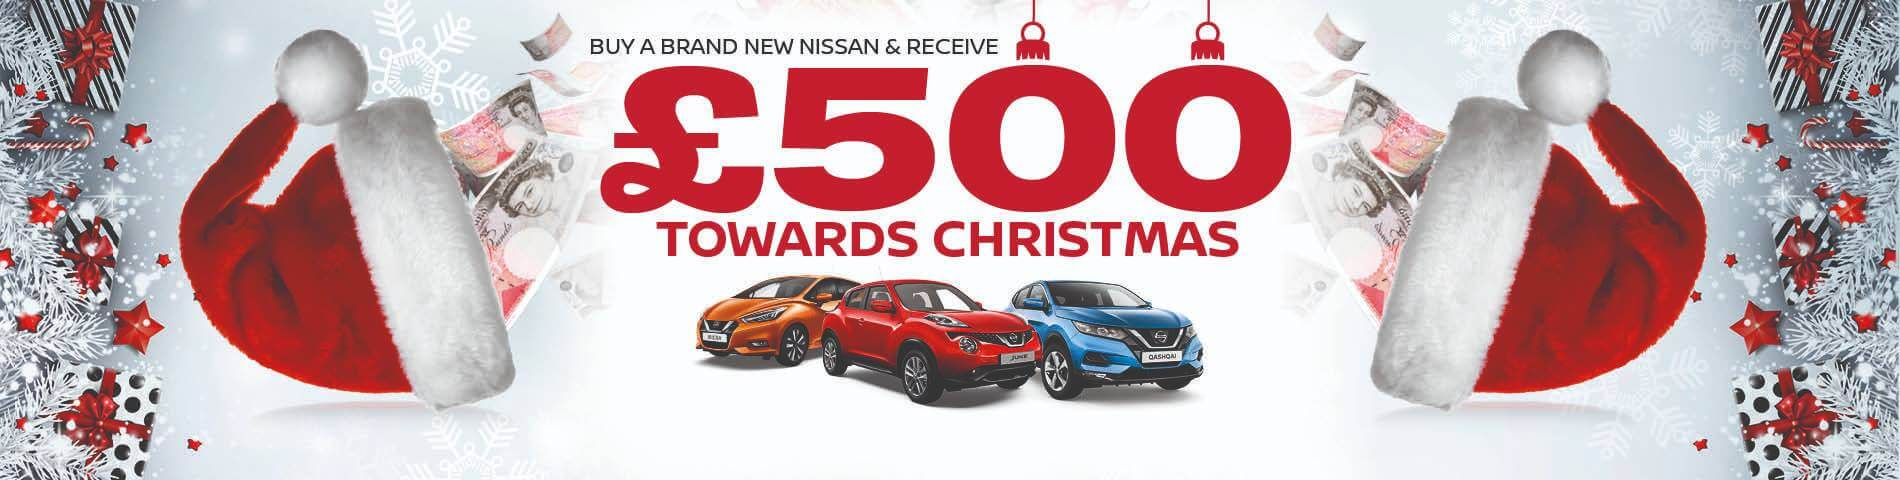 £500 Towards Chirstmas - Nissan